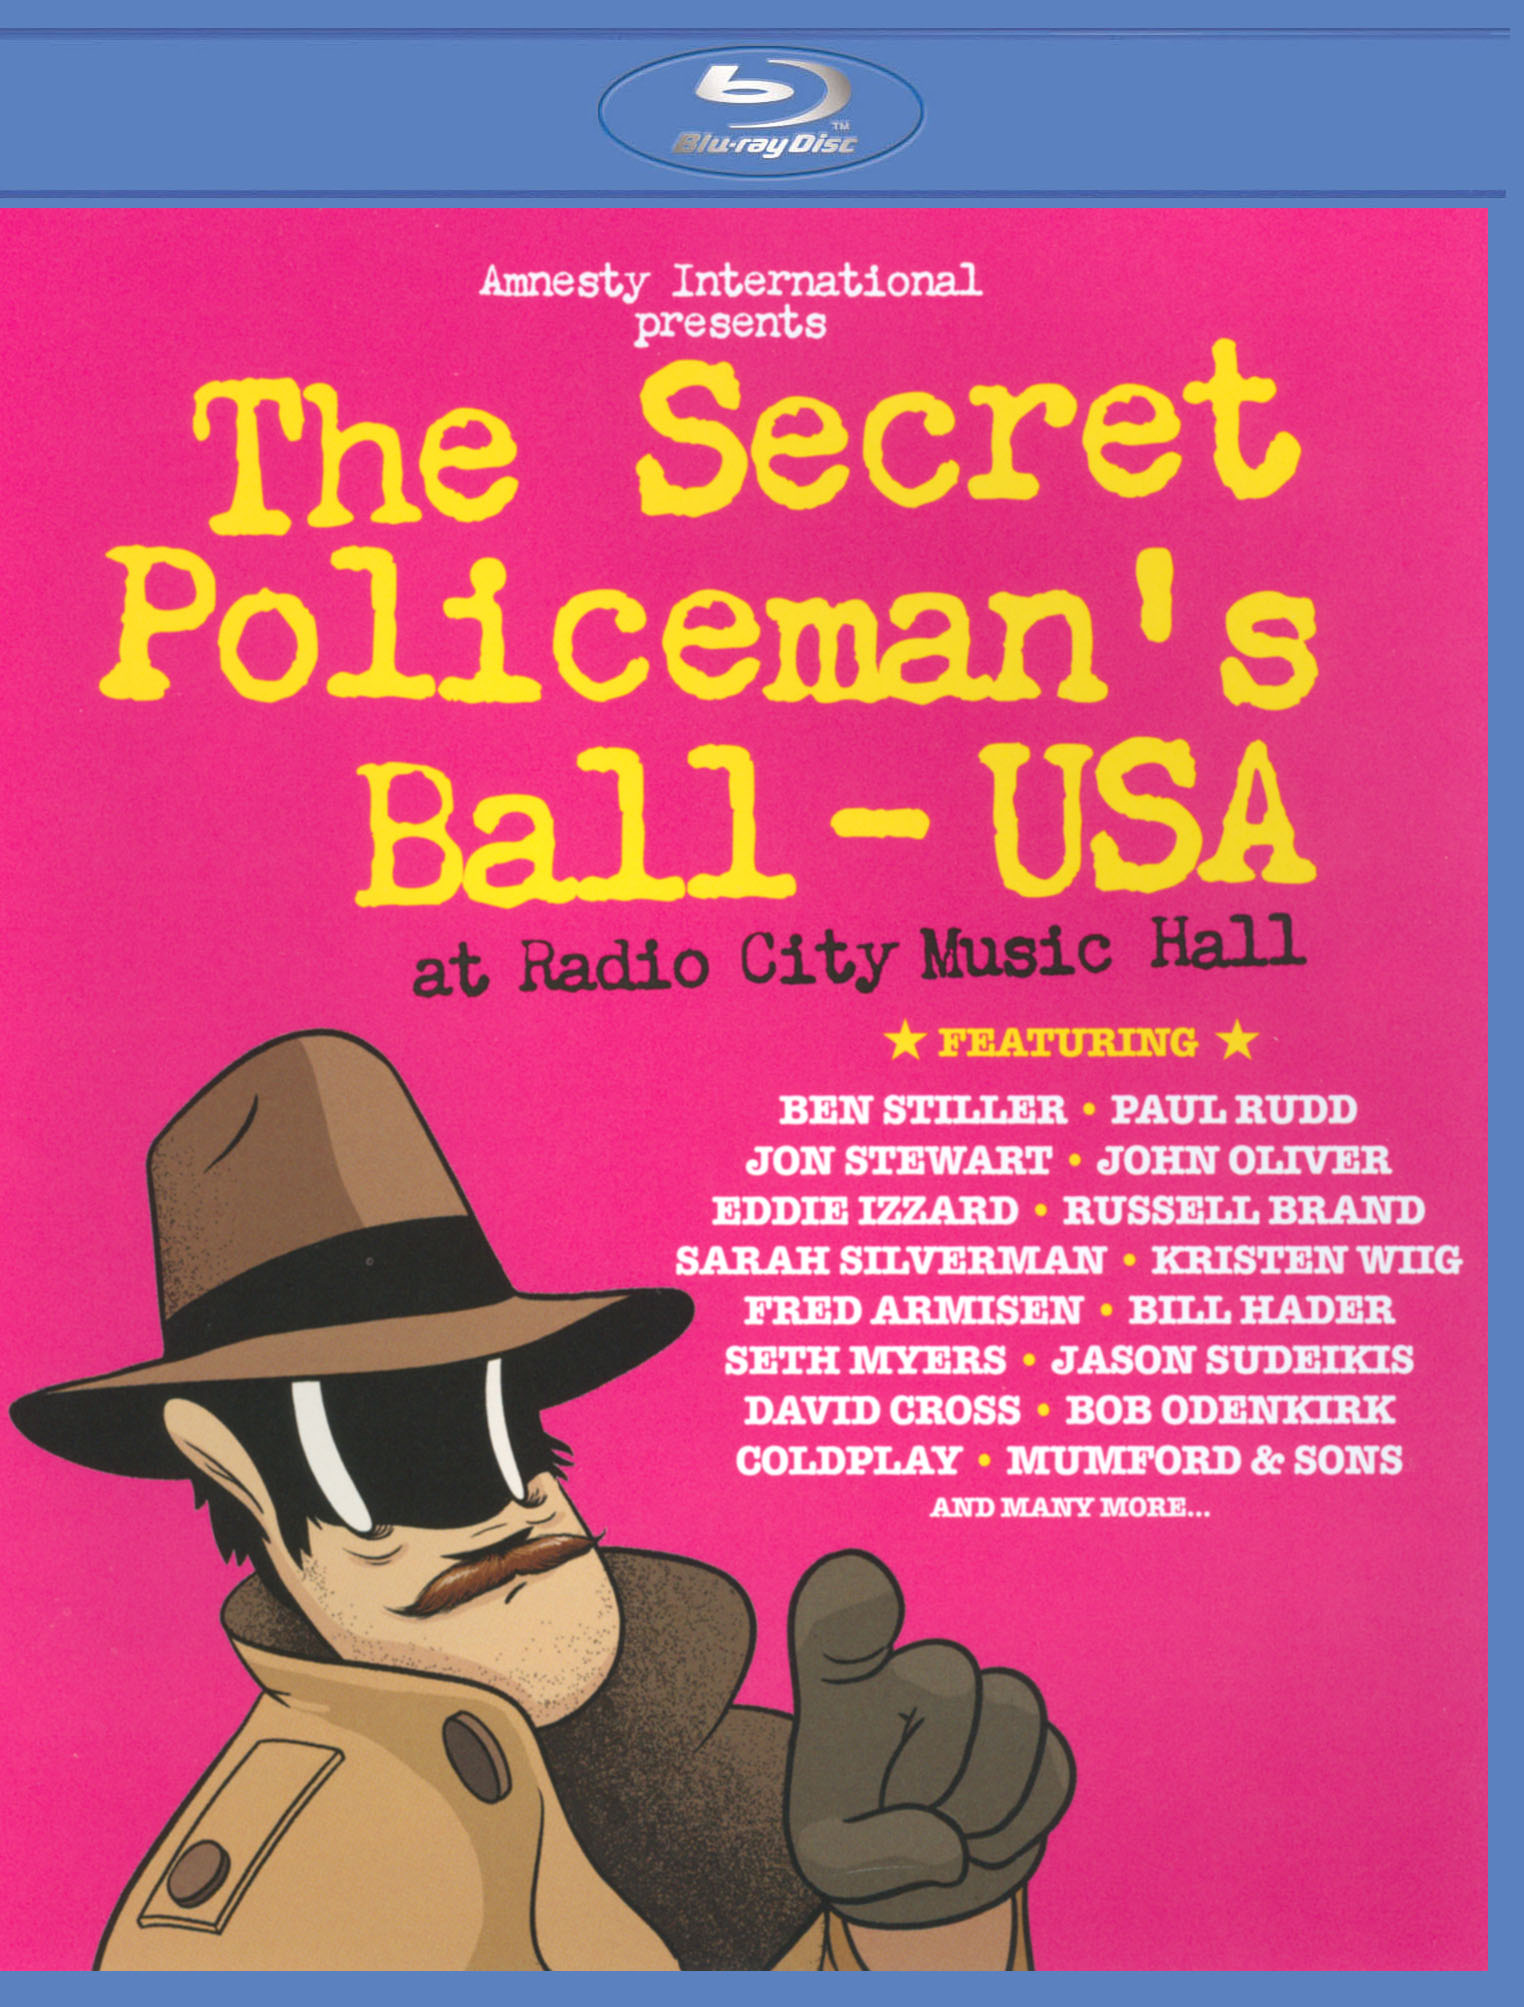 The Secret Policeman's Ball: 4 March 2012 - Radio City Music Hall